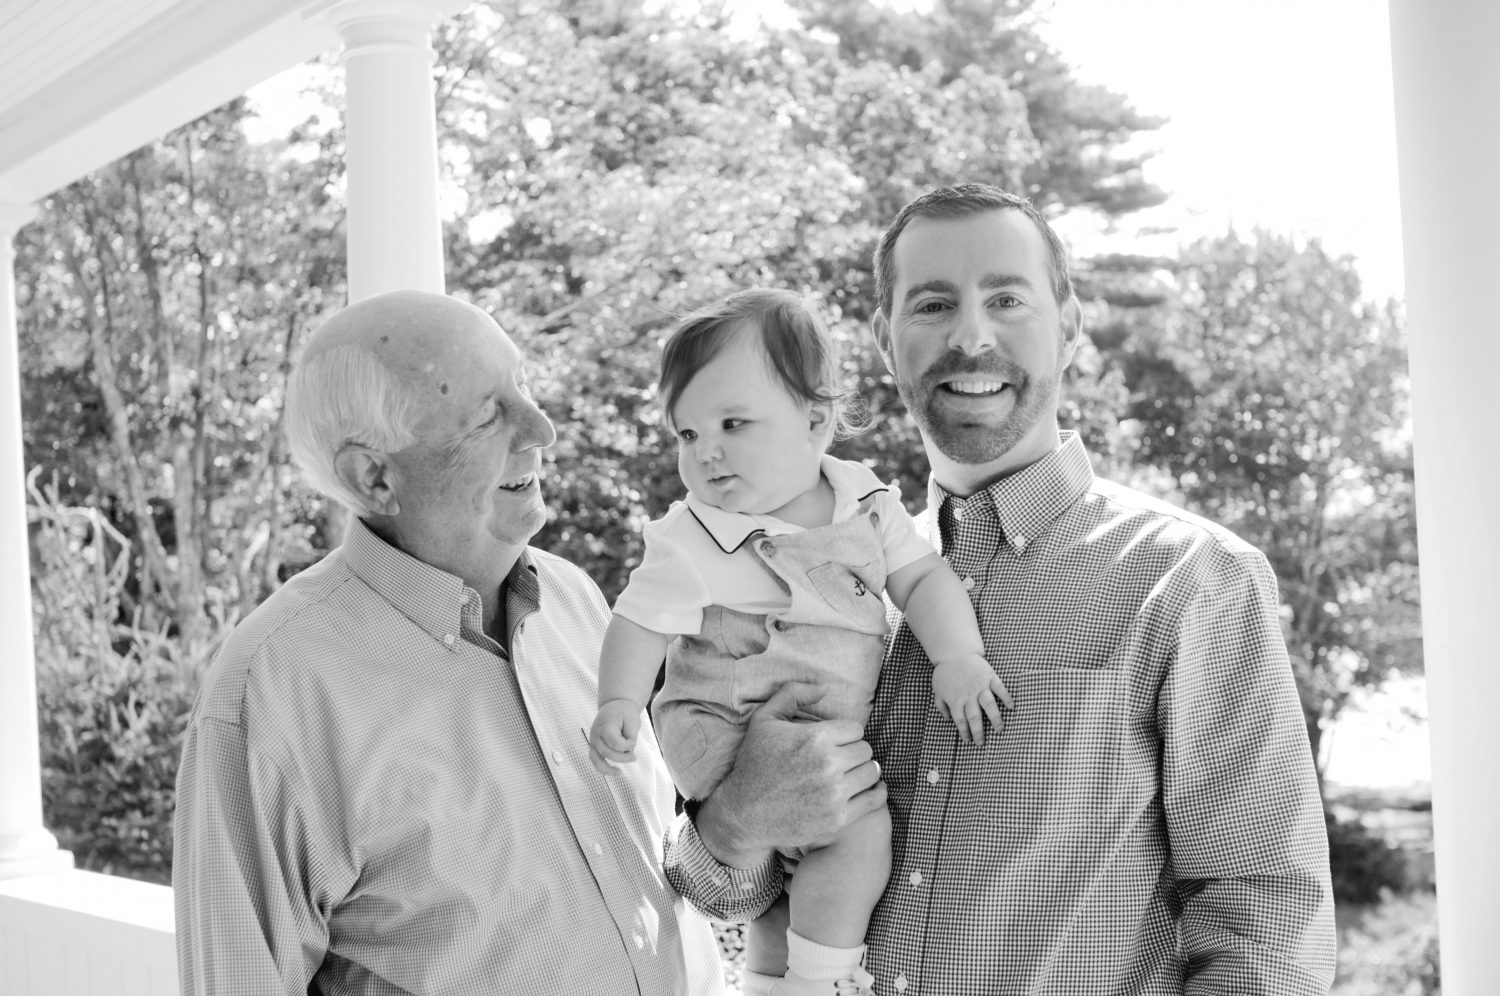 three generations of boys - grandfather, son and grandson baby